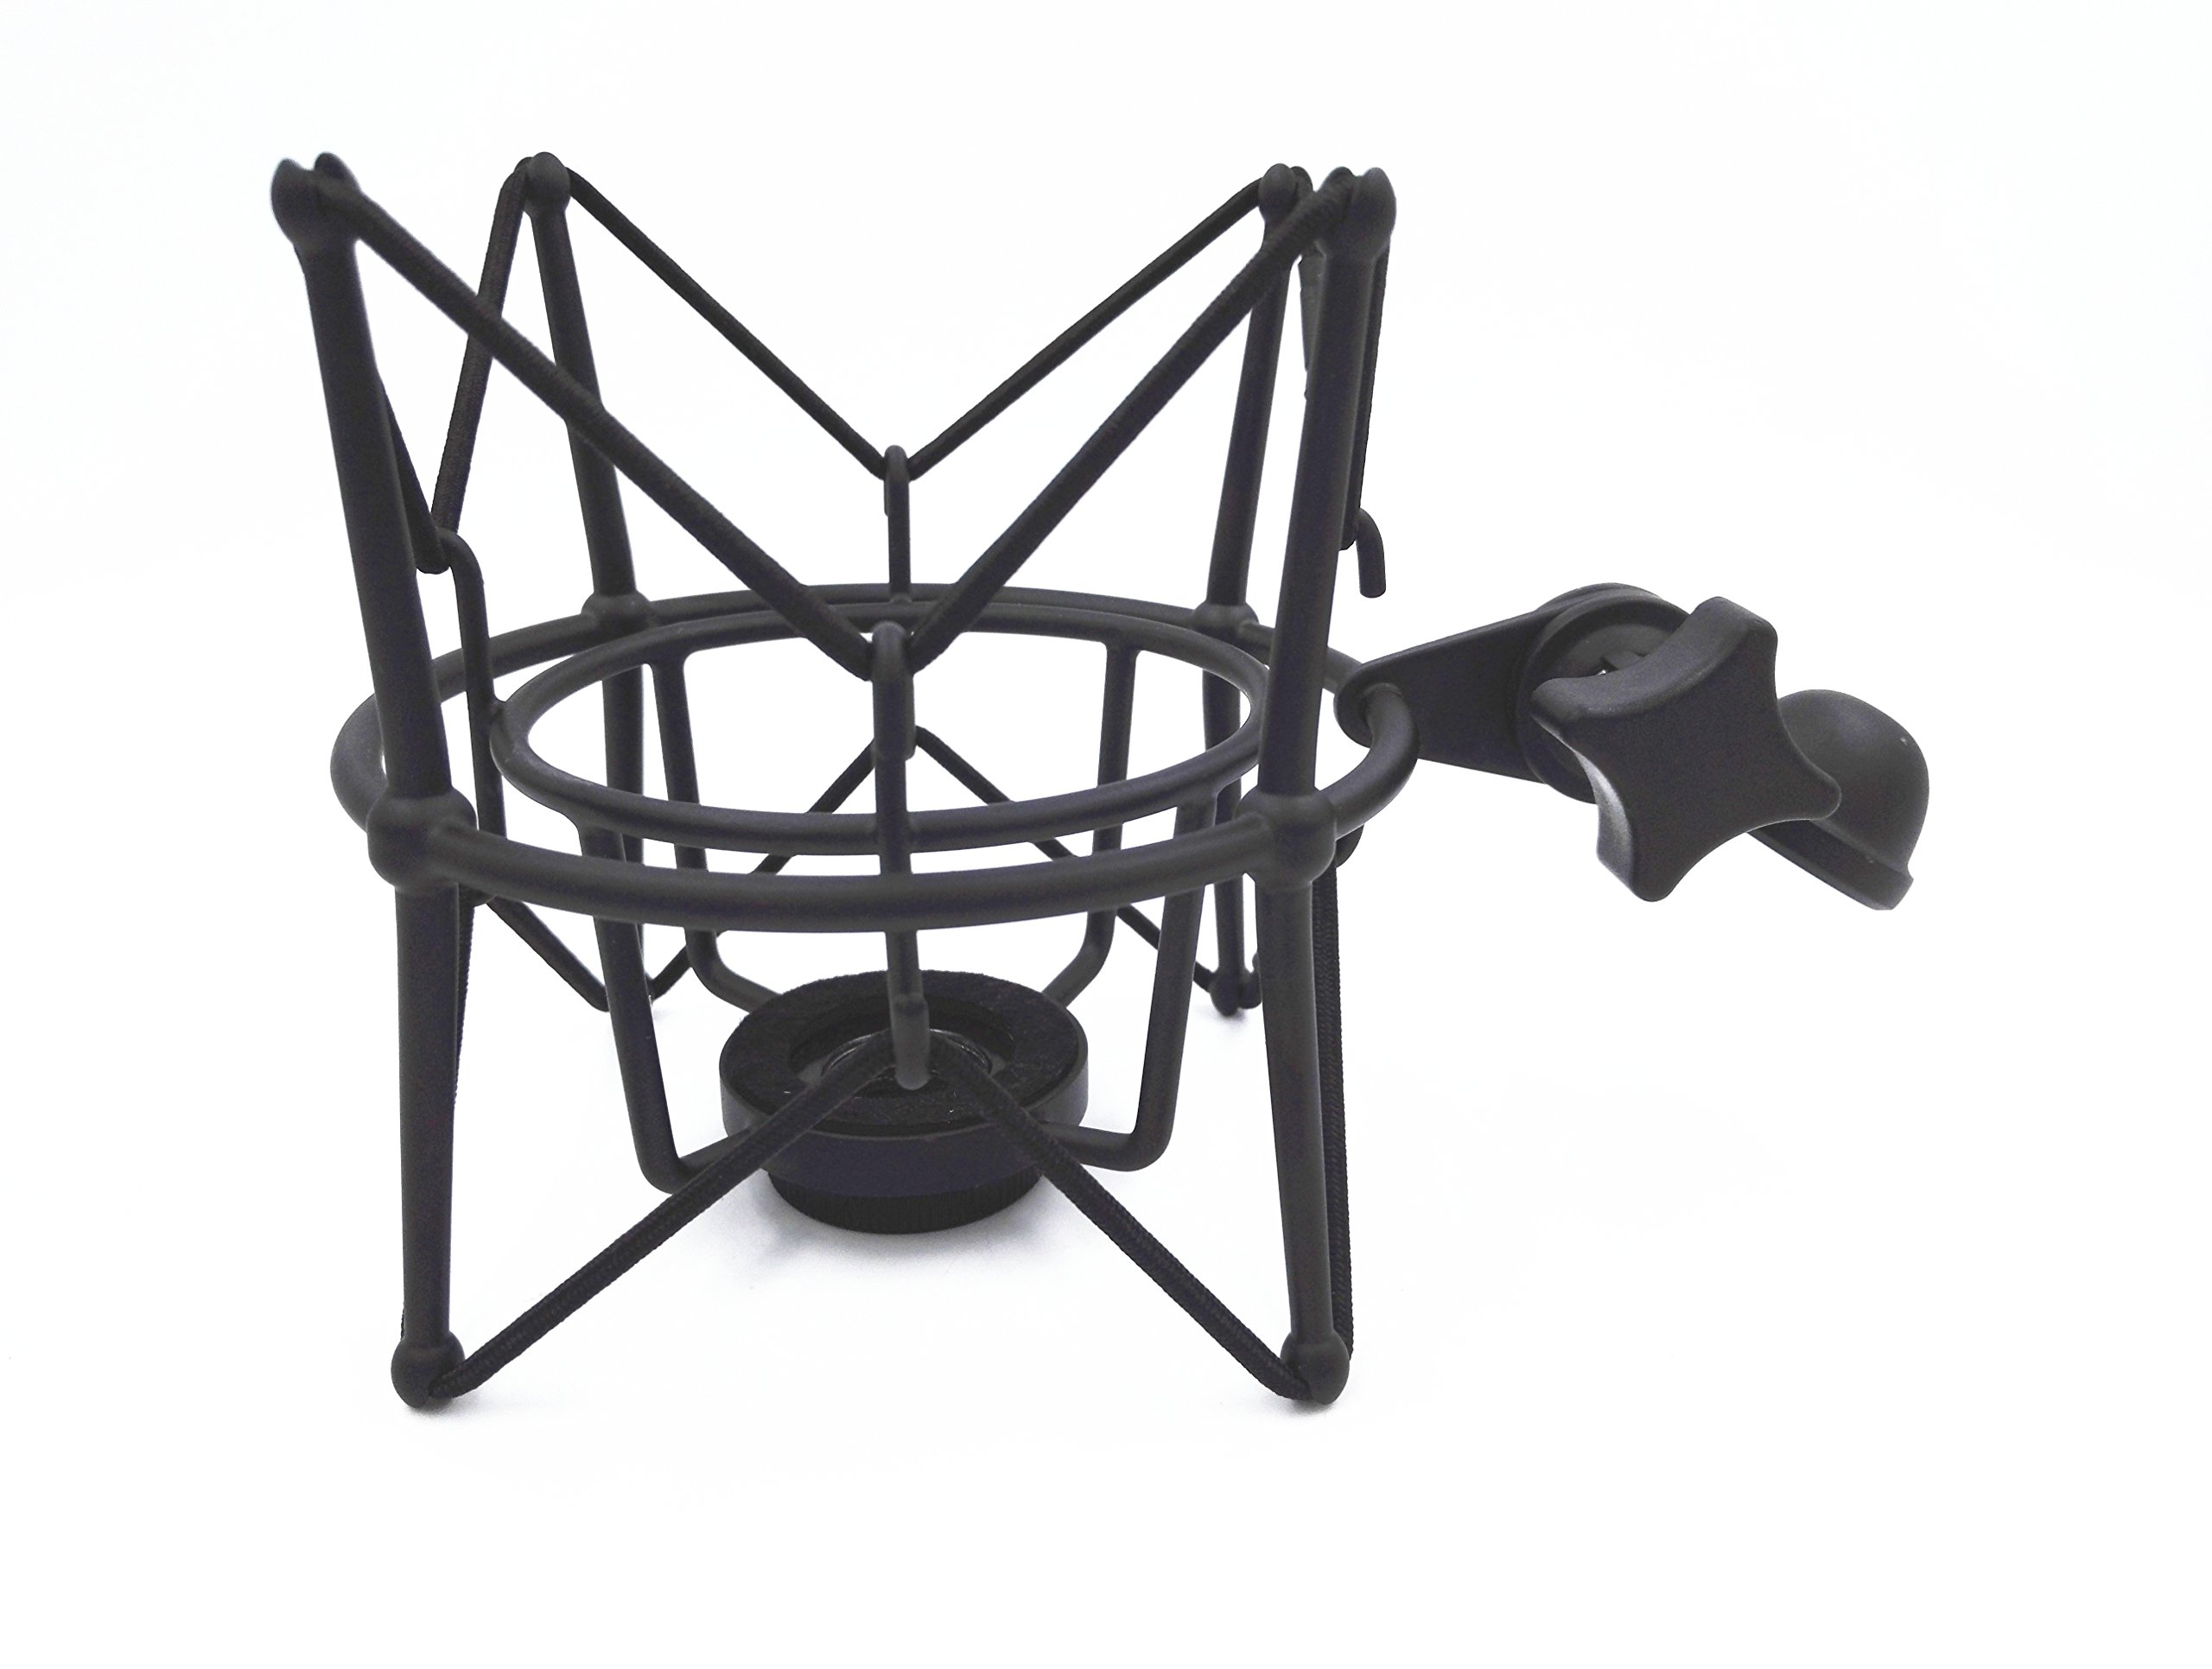 Boseen Studio Condenser Metal Microphone Spider Shock Mount Holder Clip Anti Vibration Suspension High Isolation, Ideal for Radio Broadcasting Studio, Voice-over Sound Studio and Recording(Black) by Boseen